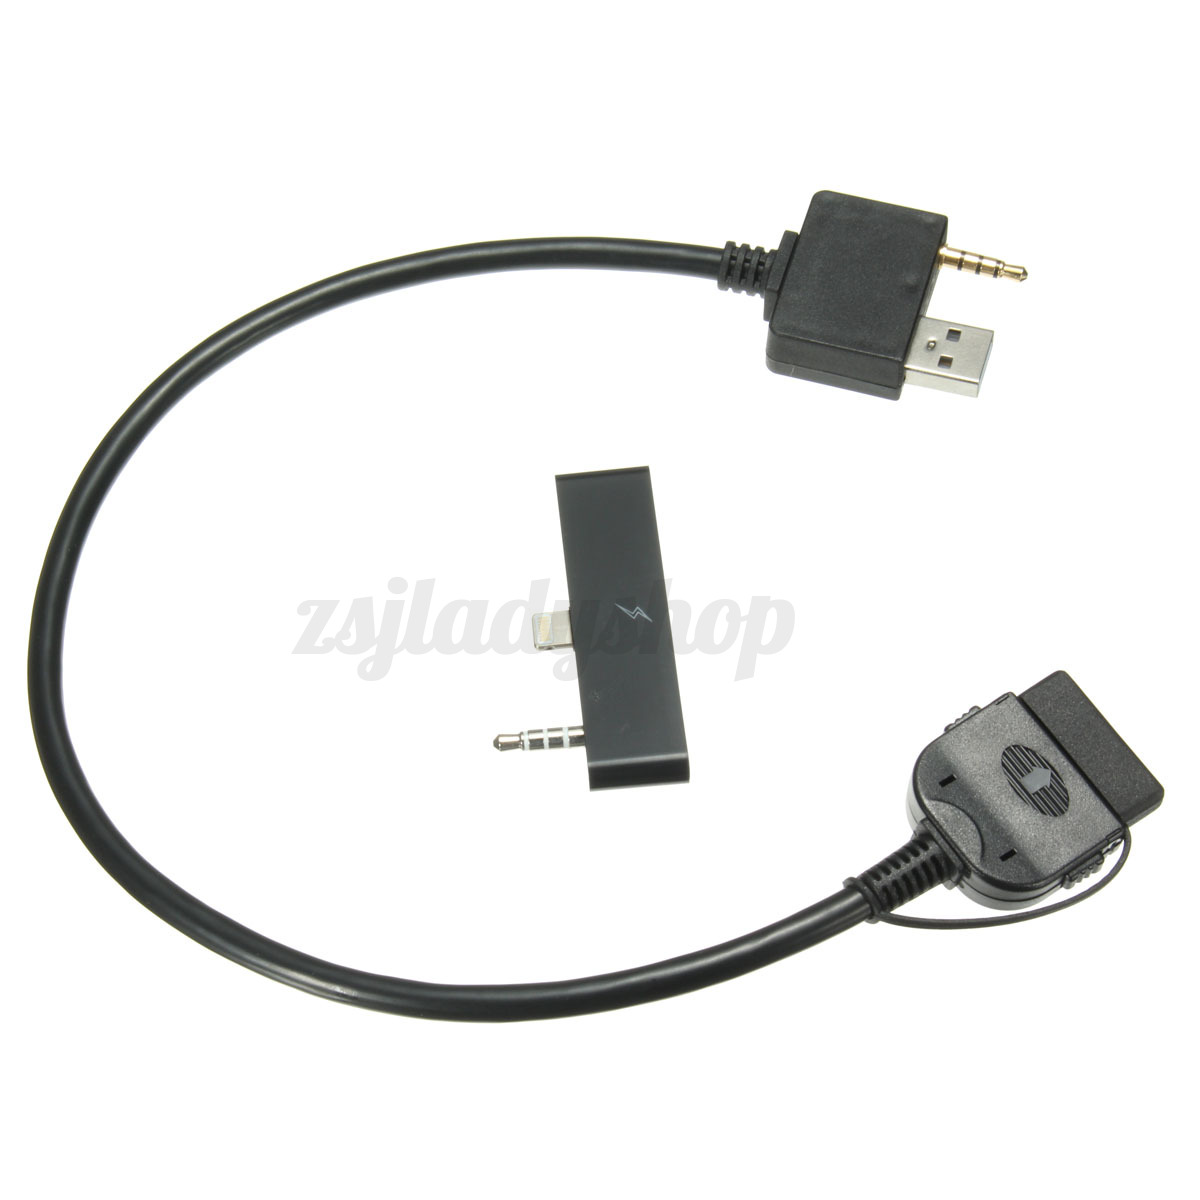 Hyundai Usb Cable Iphone